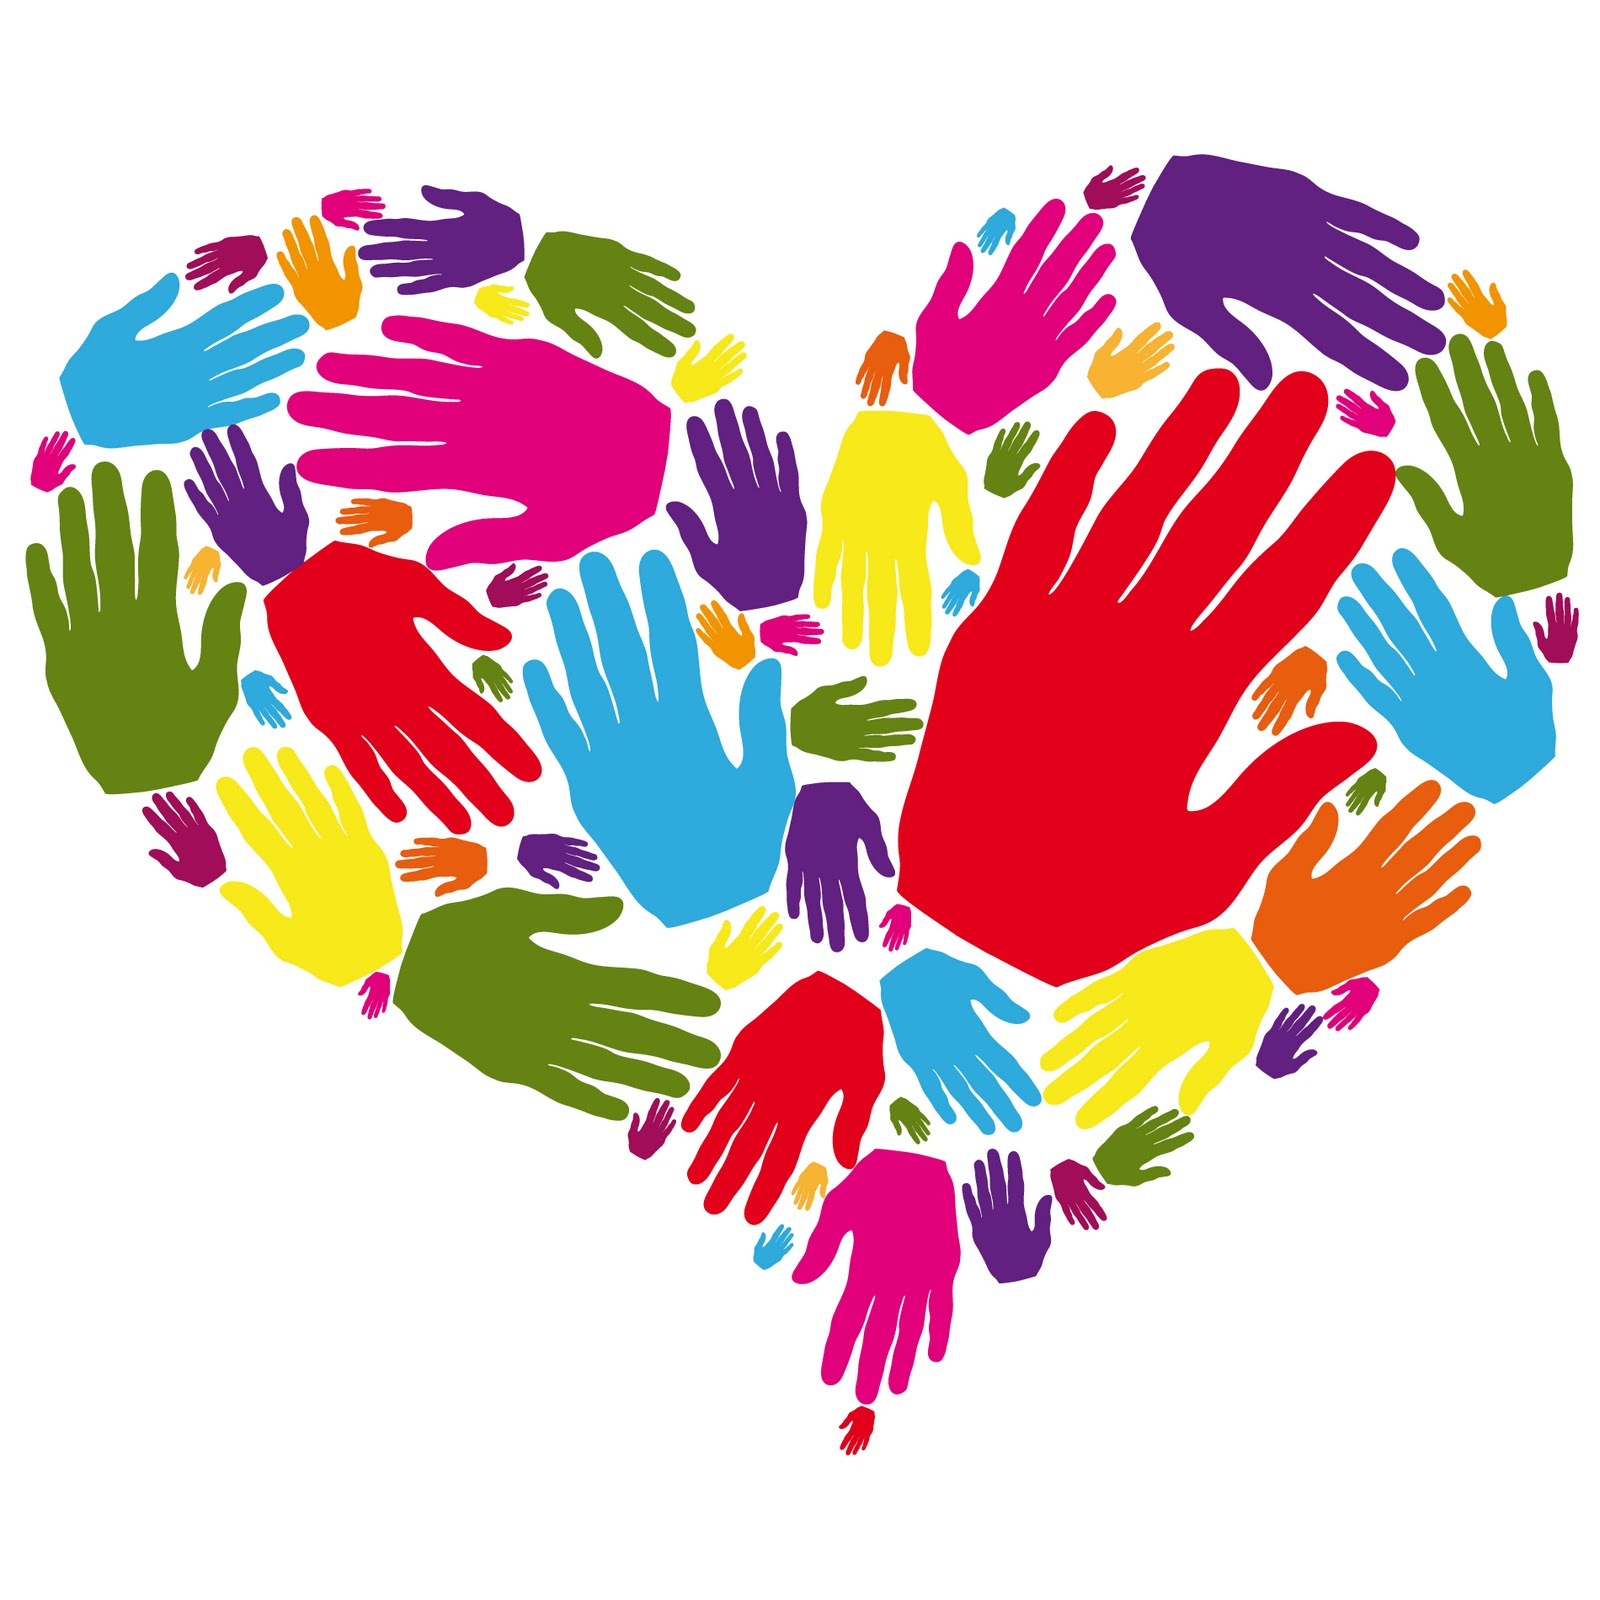 Clipart helping hands jpg library Free Helping Hands Cliparts, Download Free Clip Art, Free Clip Art ... jpg library